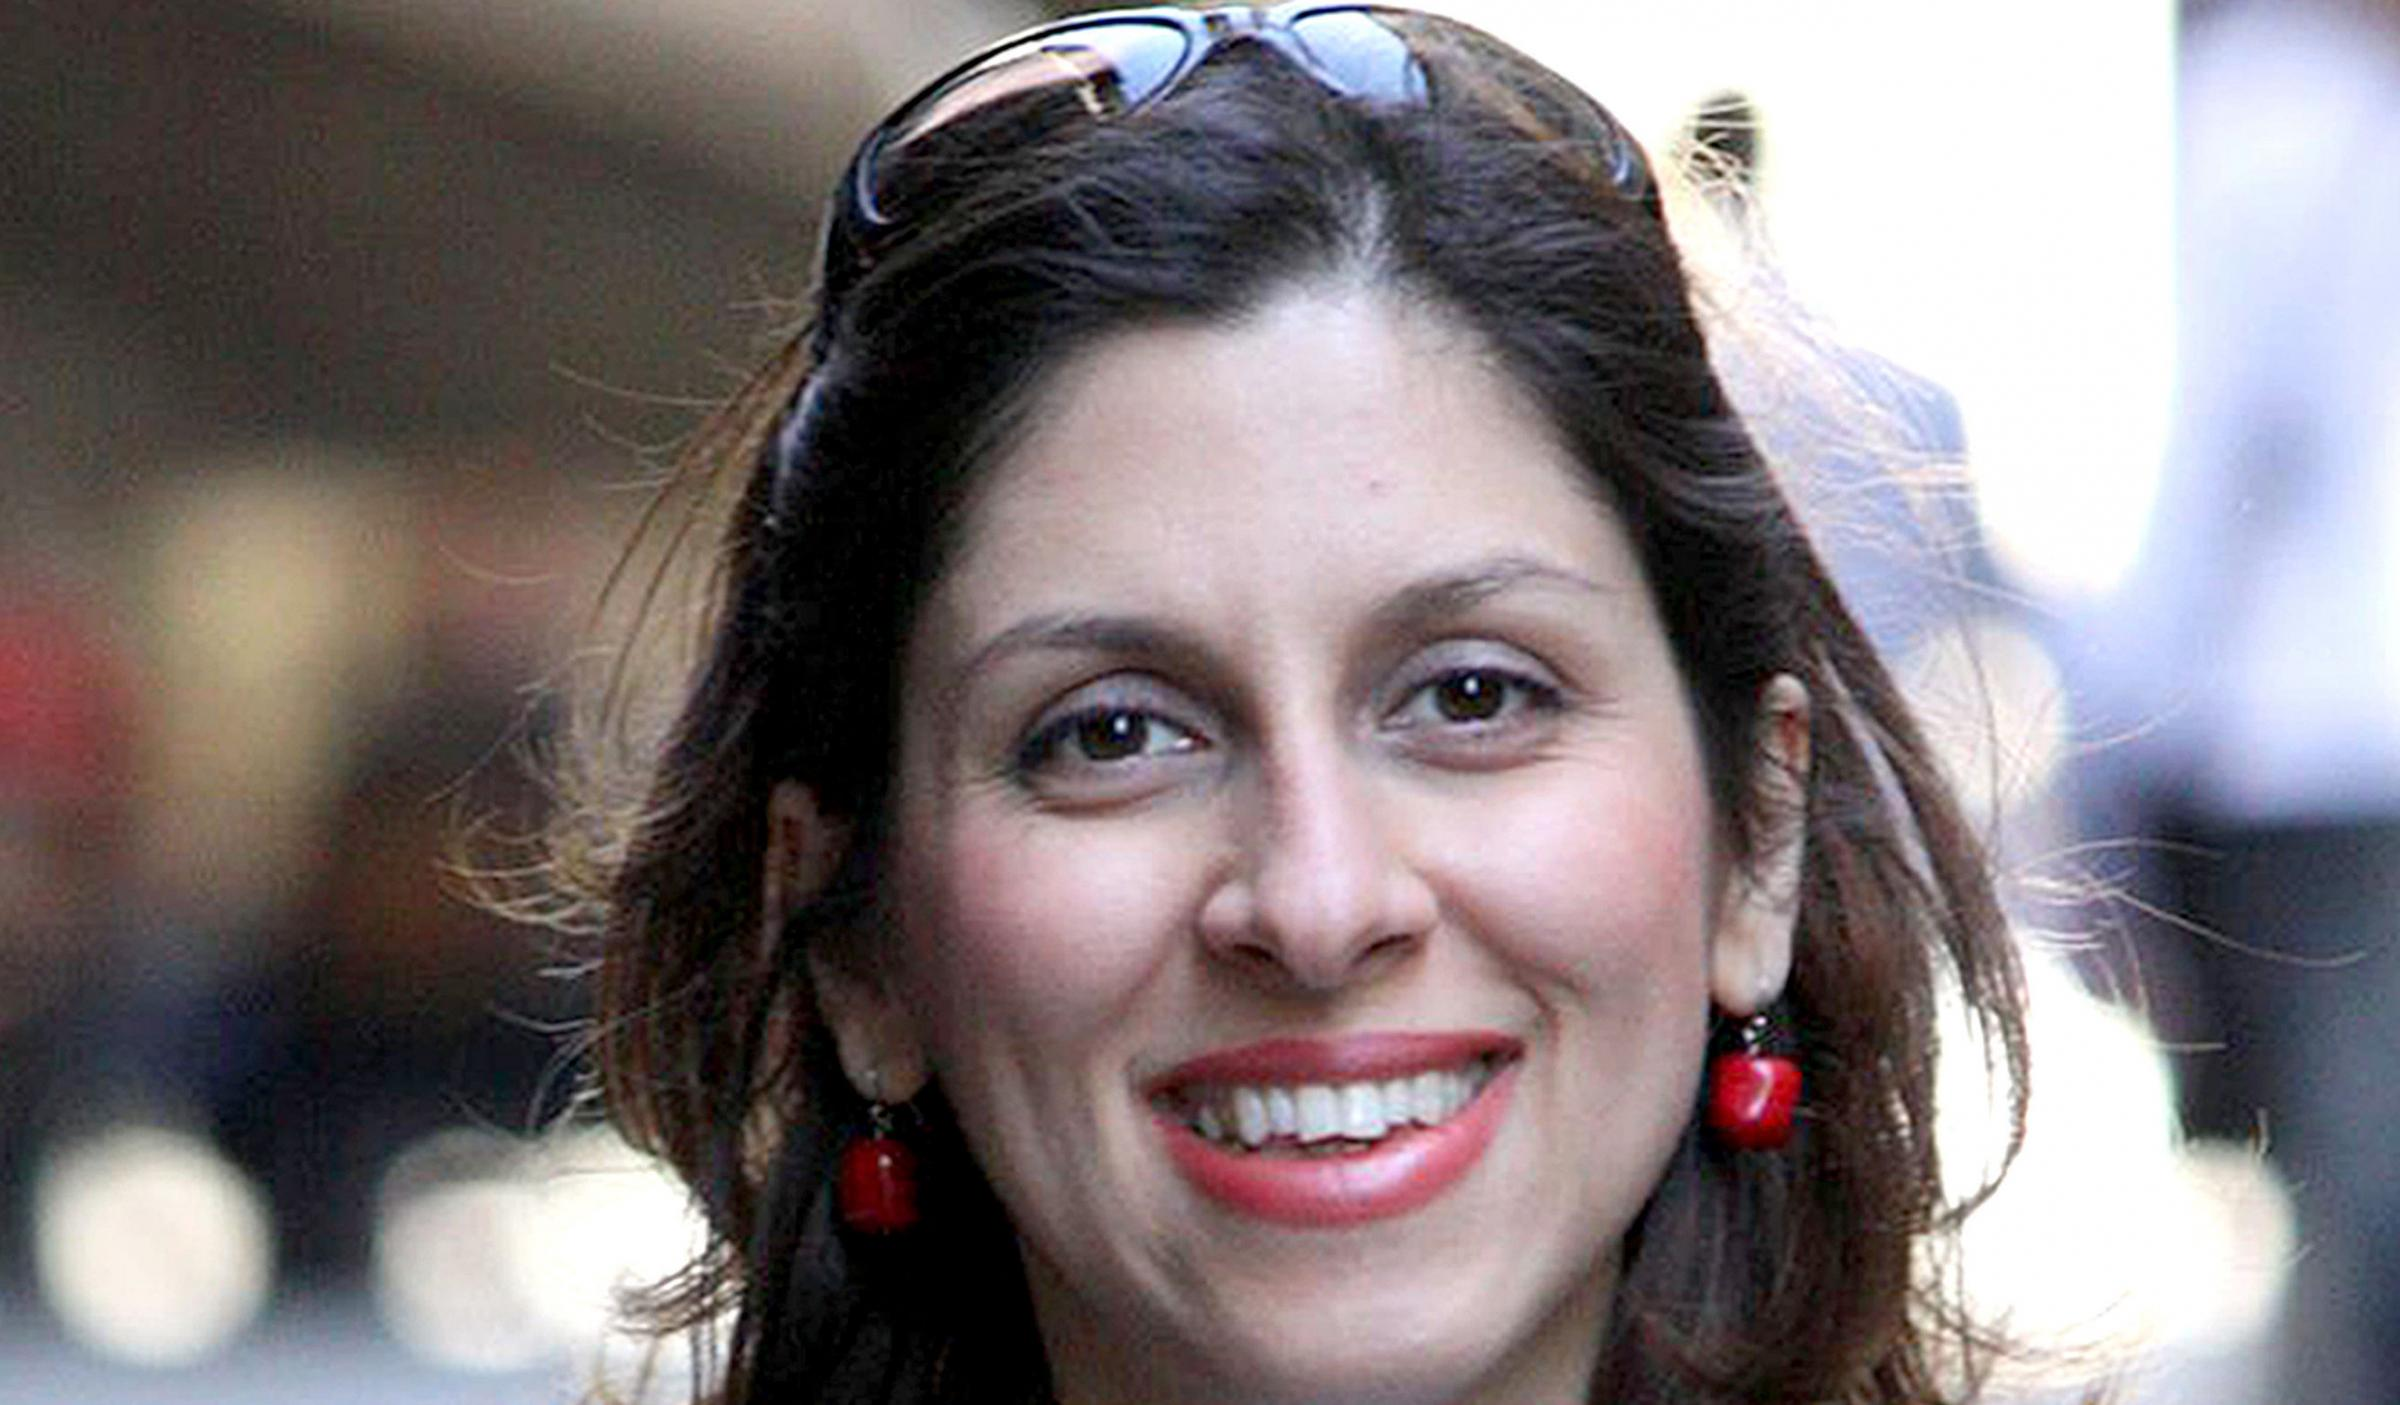 Nazanin Zaghari-Ratcliffe had been hoping to learn if she could return home this week